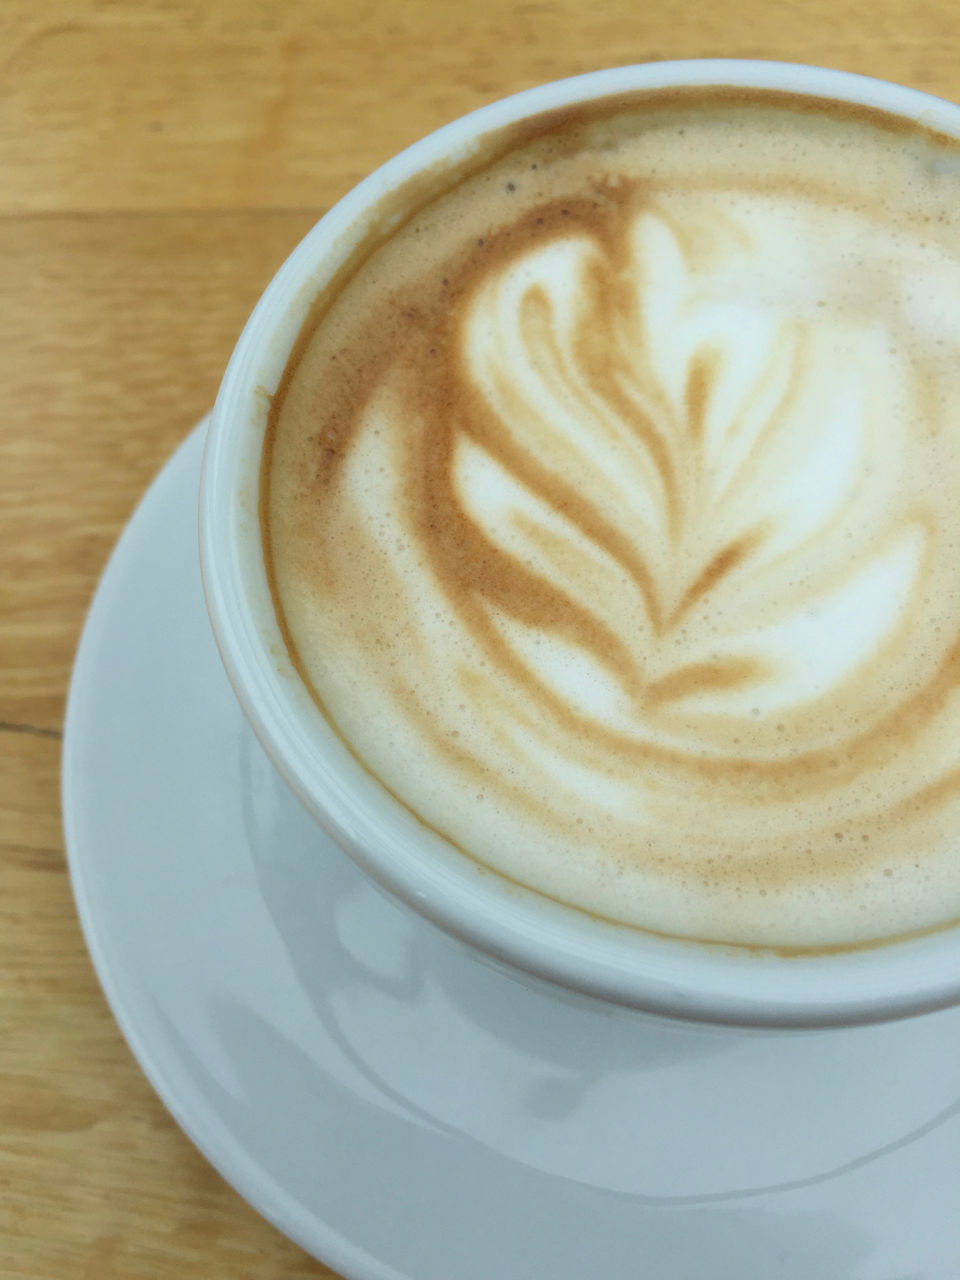 coffee cup, coffee - drink, drink, frothy drink, refreshment, food and drink, froth art, cappuccino, saucer, table, still life, design, latte, close-up, freshness, foam, no people, indoors, high angle view, pattern, healthy eating, day, mocha